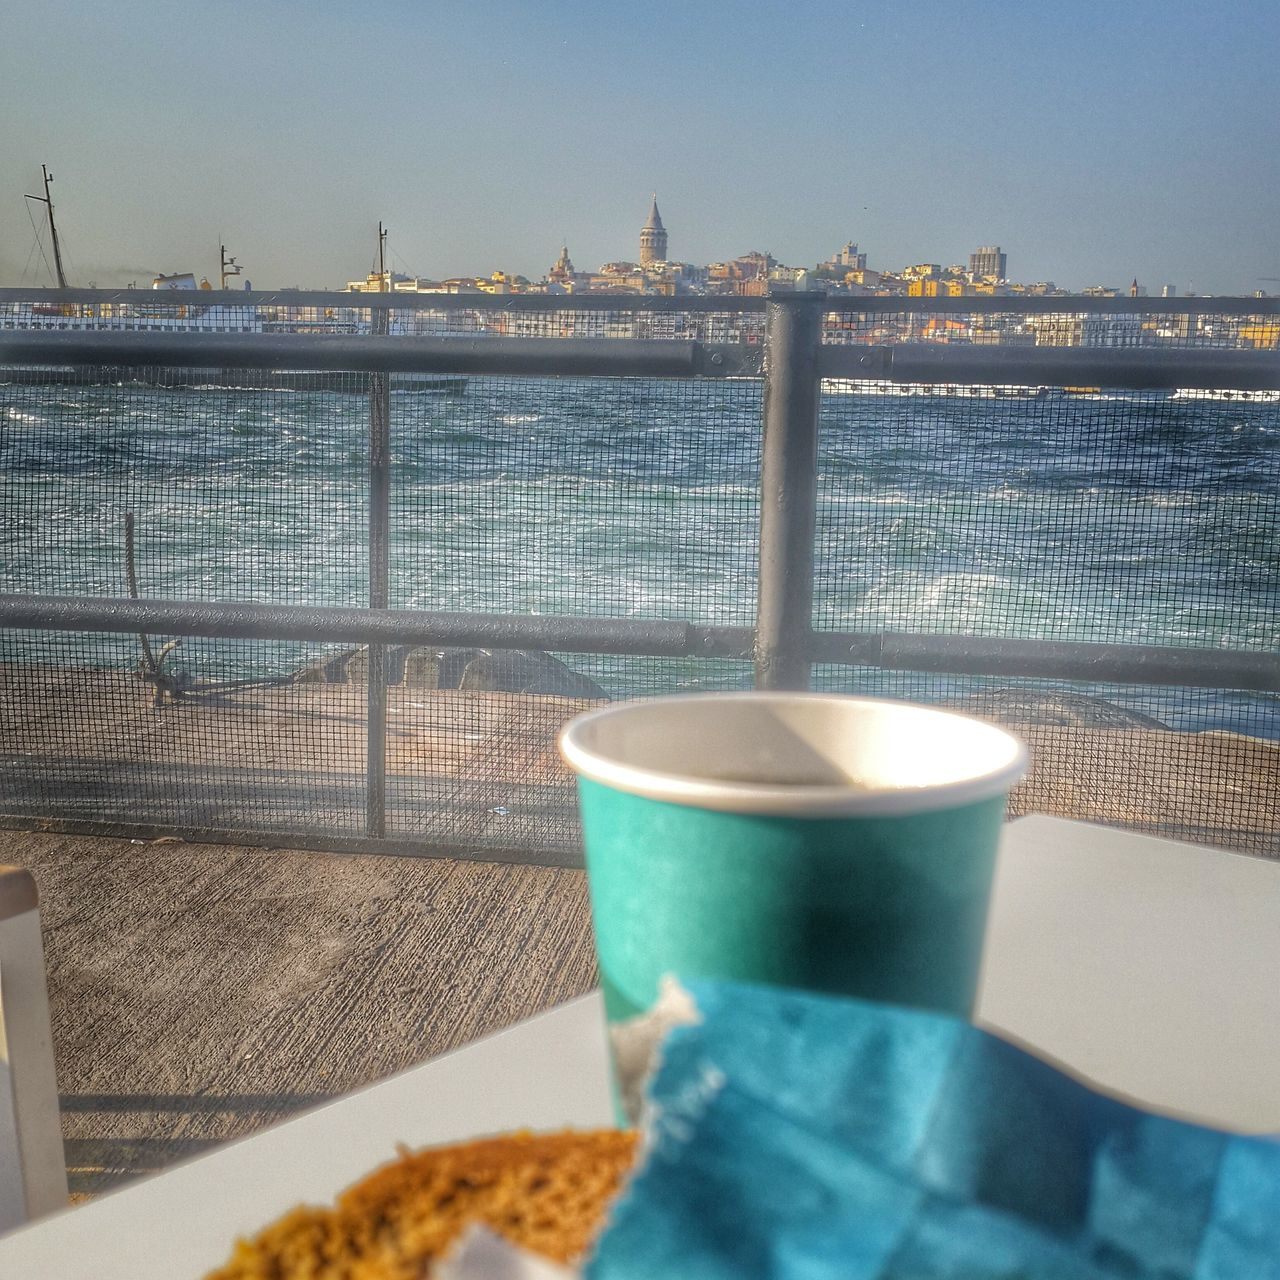 water, food and drink, railing, coffee cup, refreshment, drink, no people, table, sea, food, day, clear sky, built structure, indoors, freshness, close-up, architecture, sky, ready-to-eat